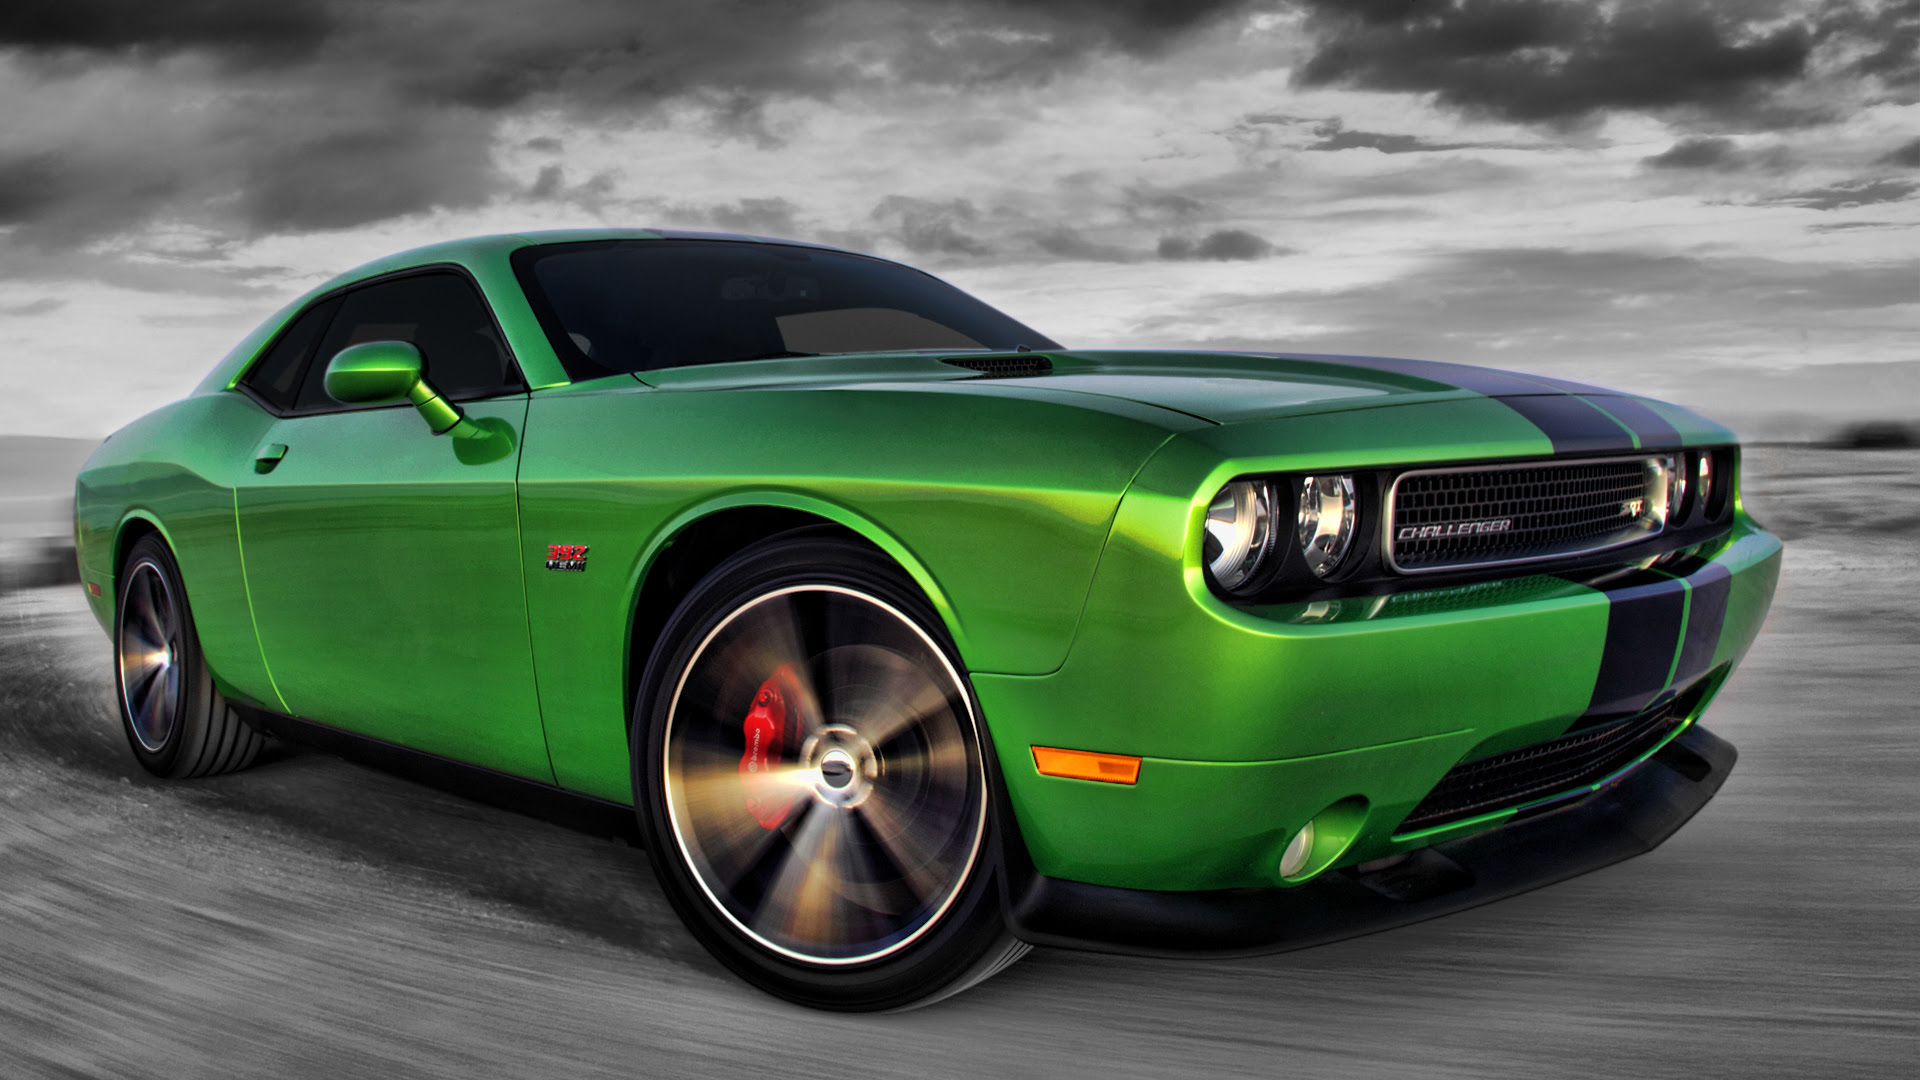 Wallpapers Collection Dodge Challenger Wallpapers 1920x1080